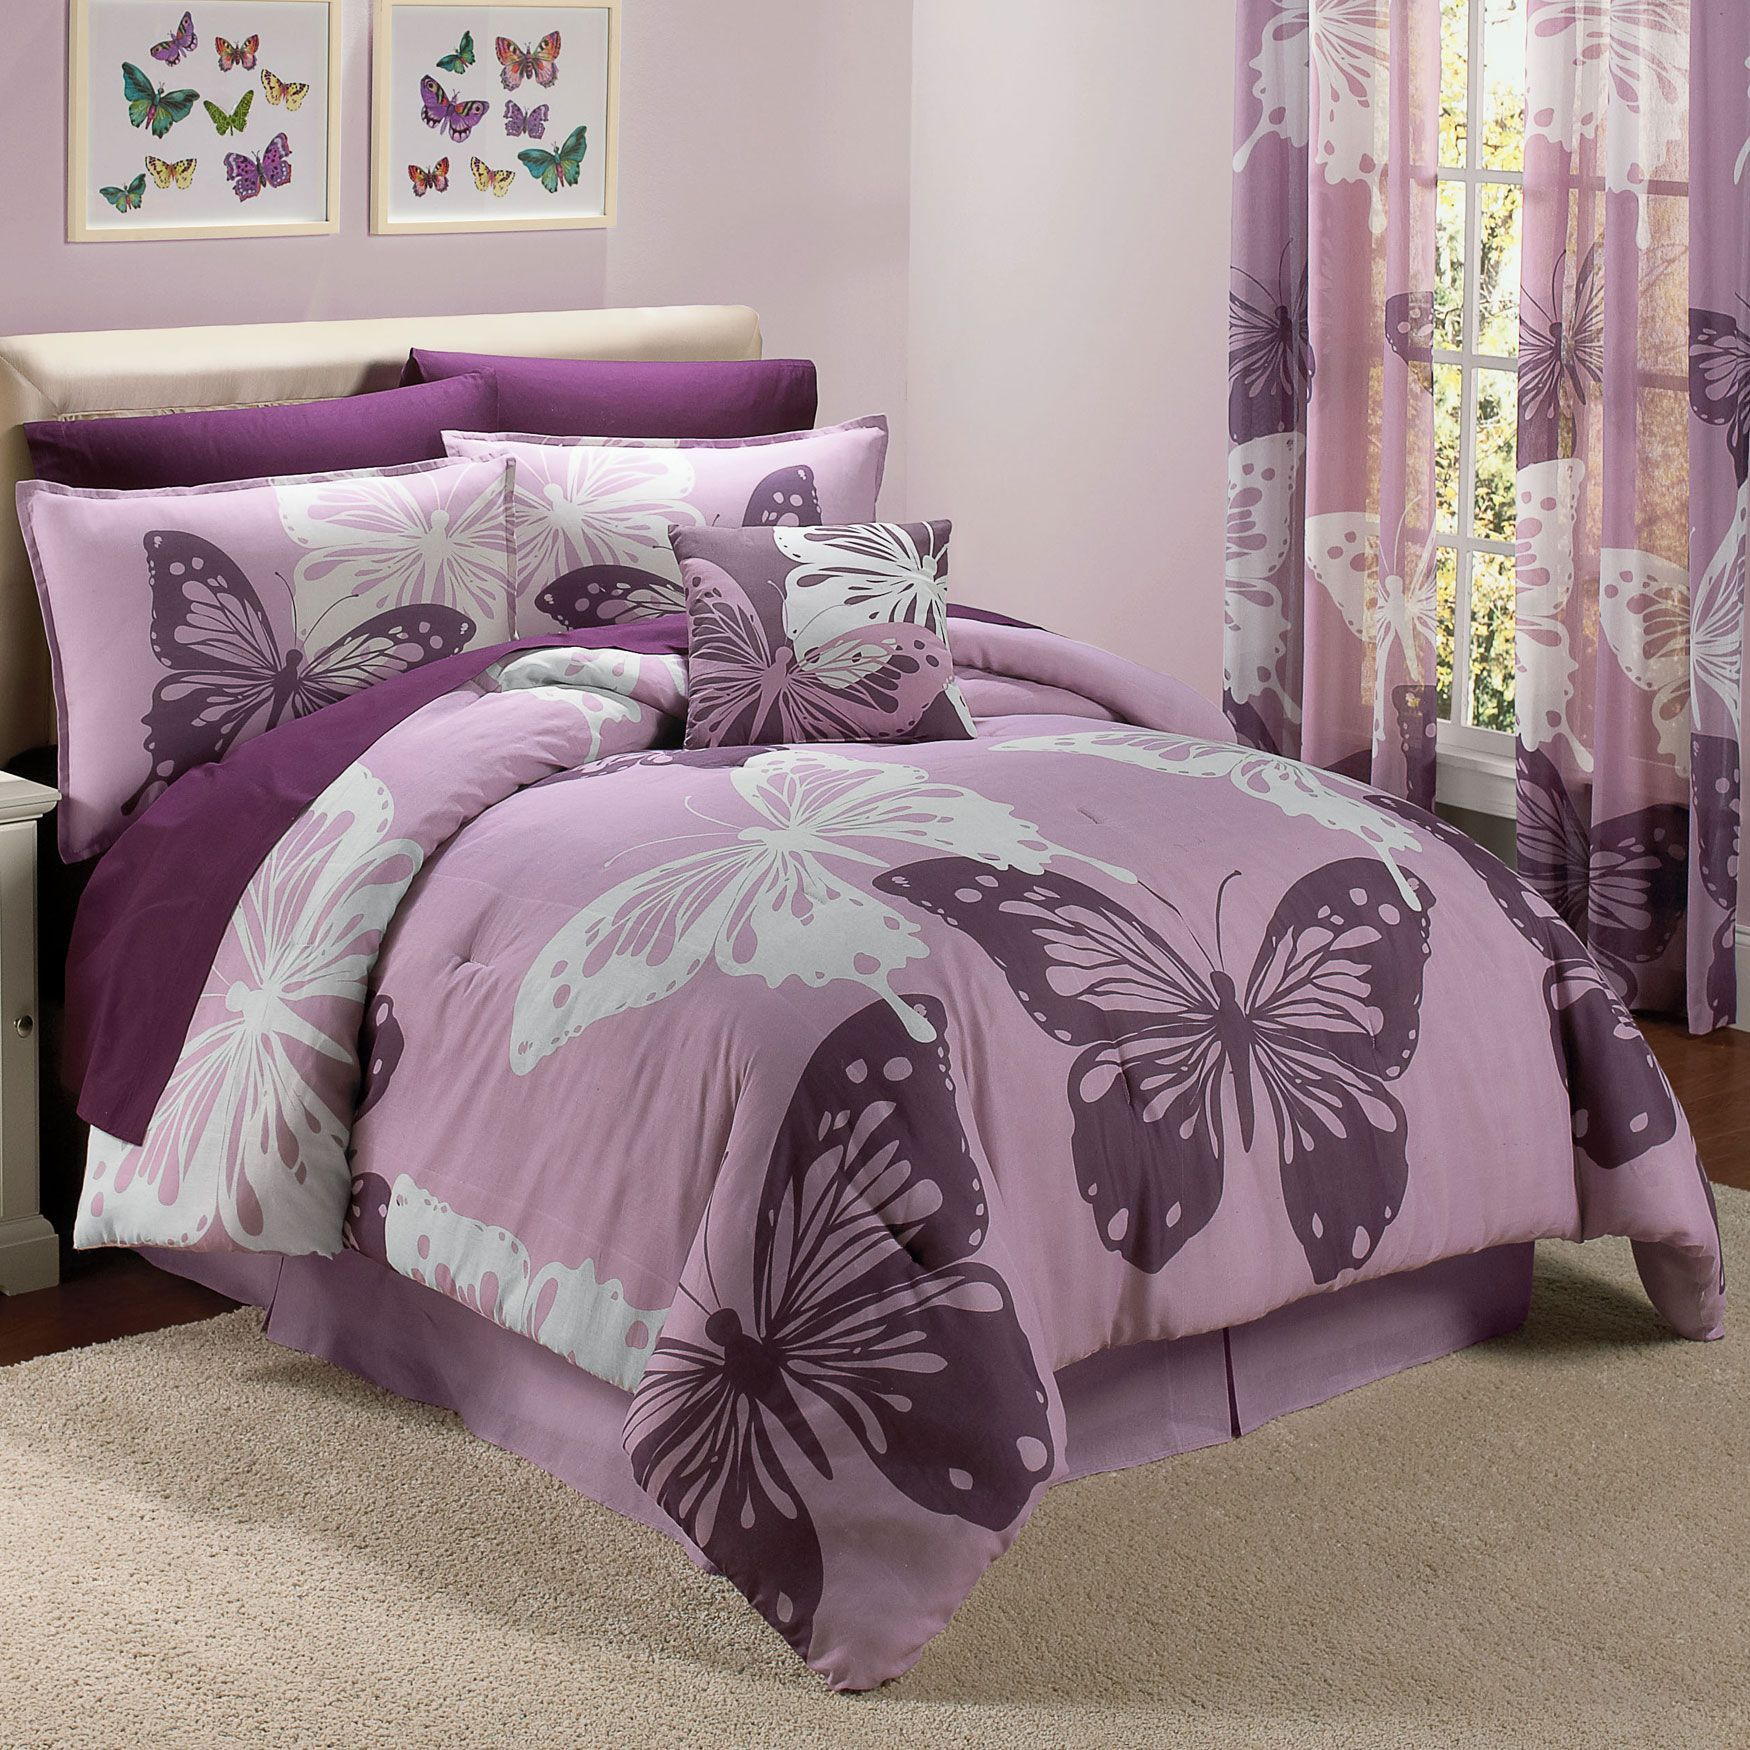 Schlafzimmer Set Lila Butterfly Bedding Quot Lila Violett Quot Meine